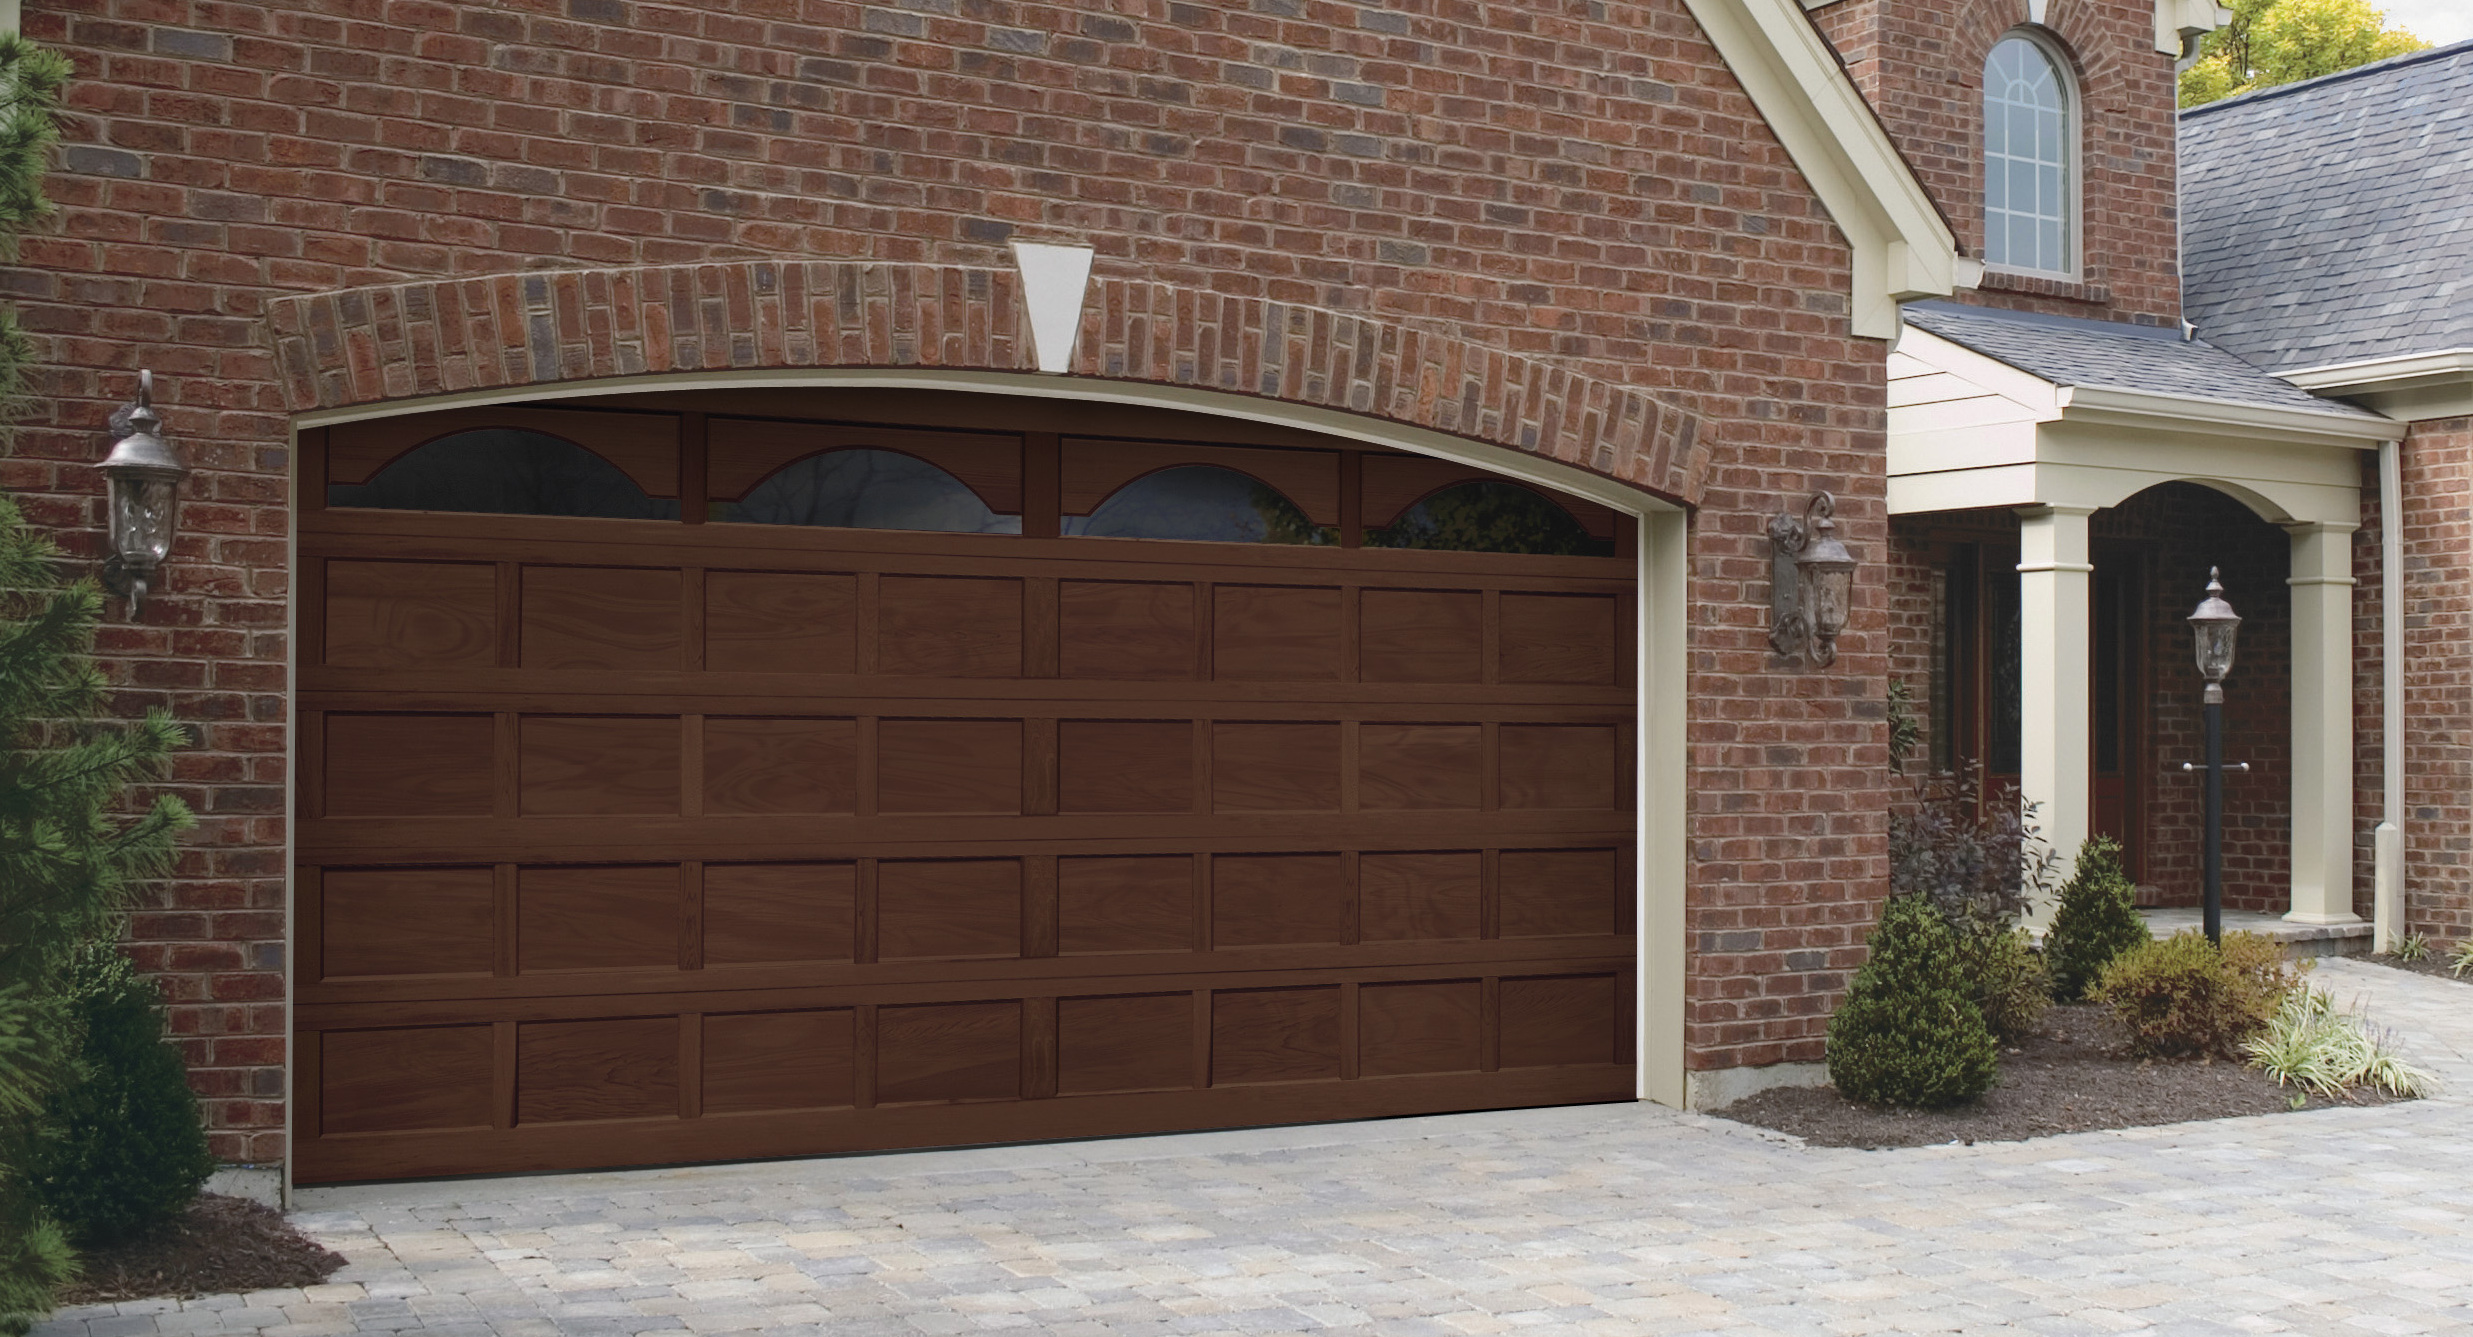 1337 #3E2C24 Residential Photo Gallery R&S Overhead Door Company image Residential Overhead Garage Doors 36732473